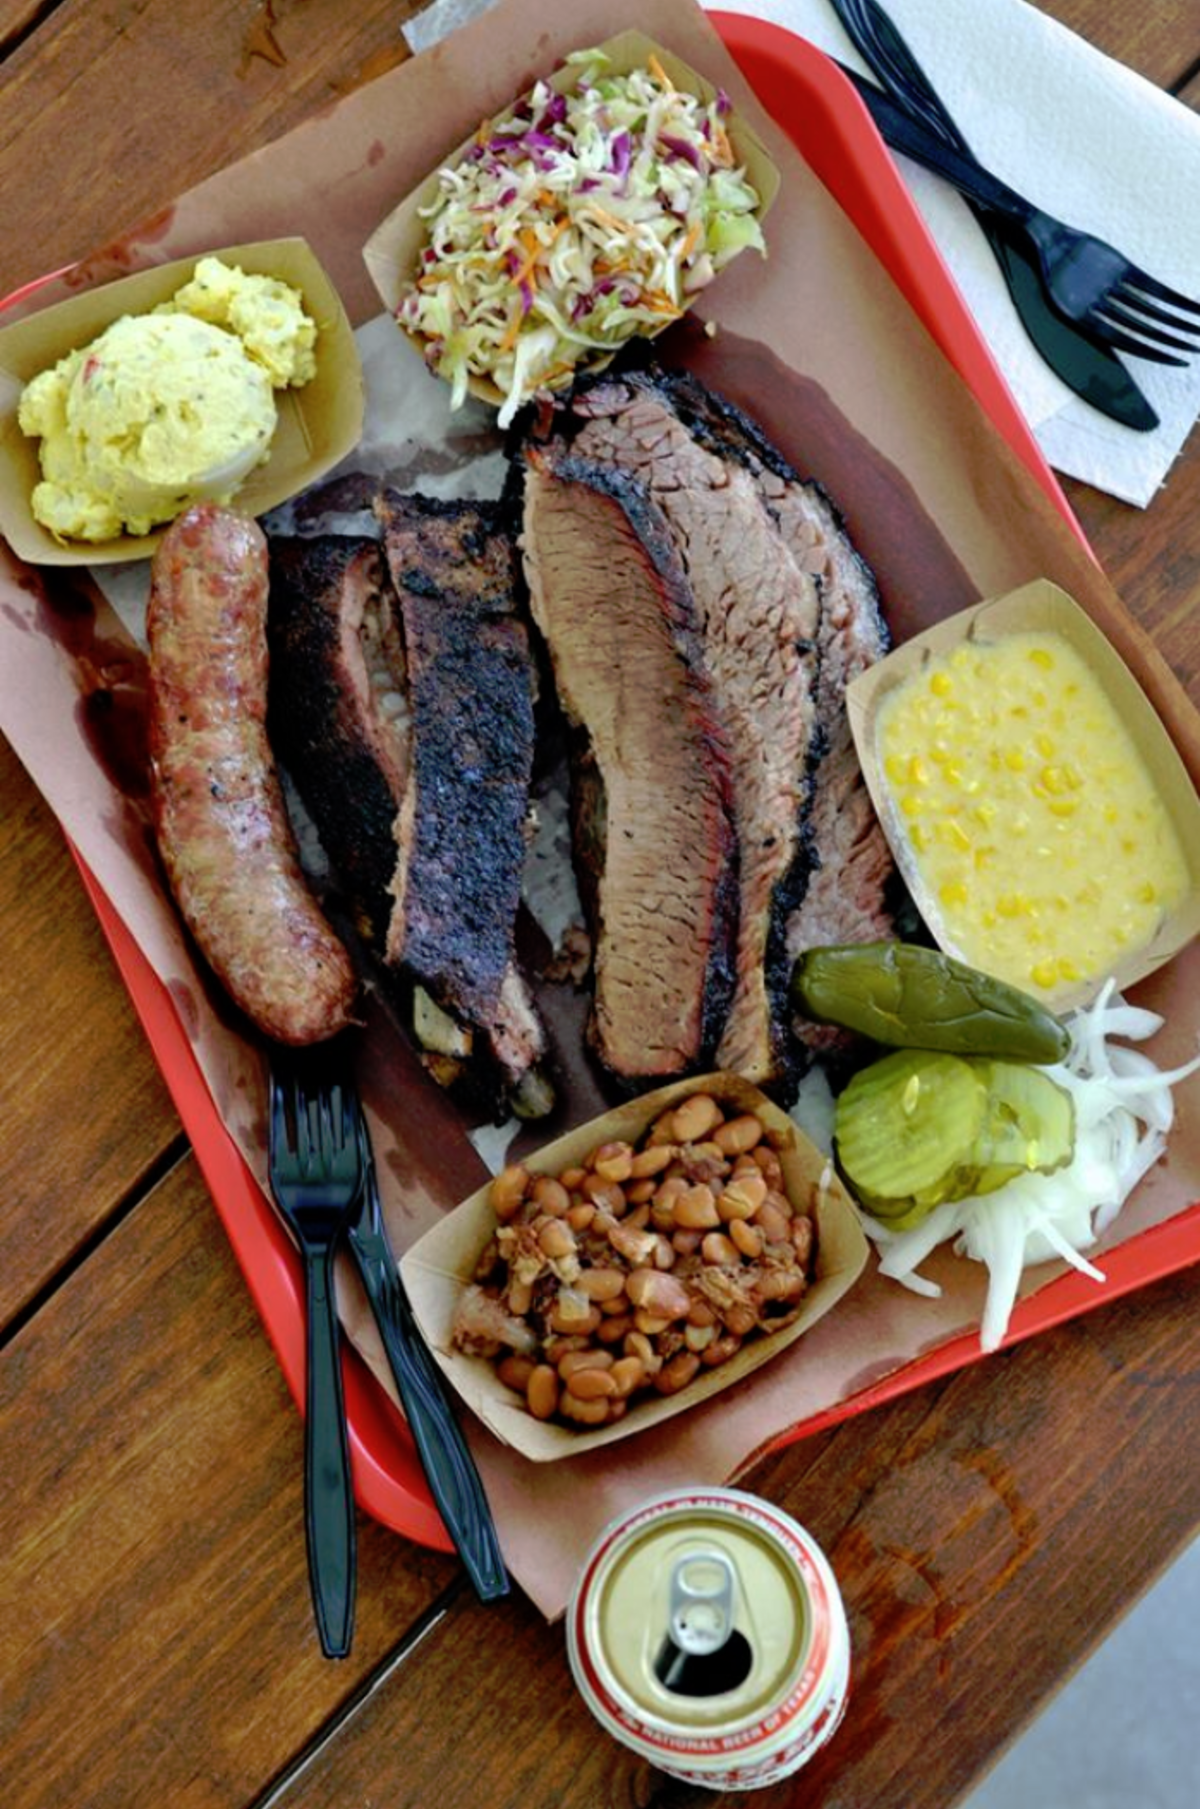 Meal at Killens Barbecue in Pearland, TX